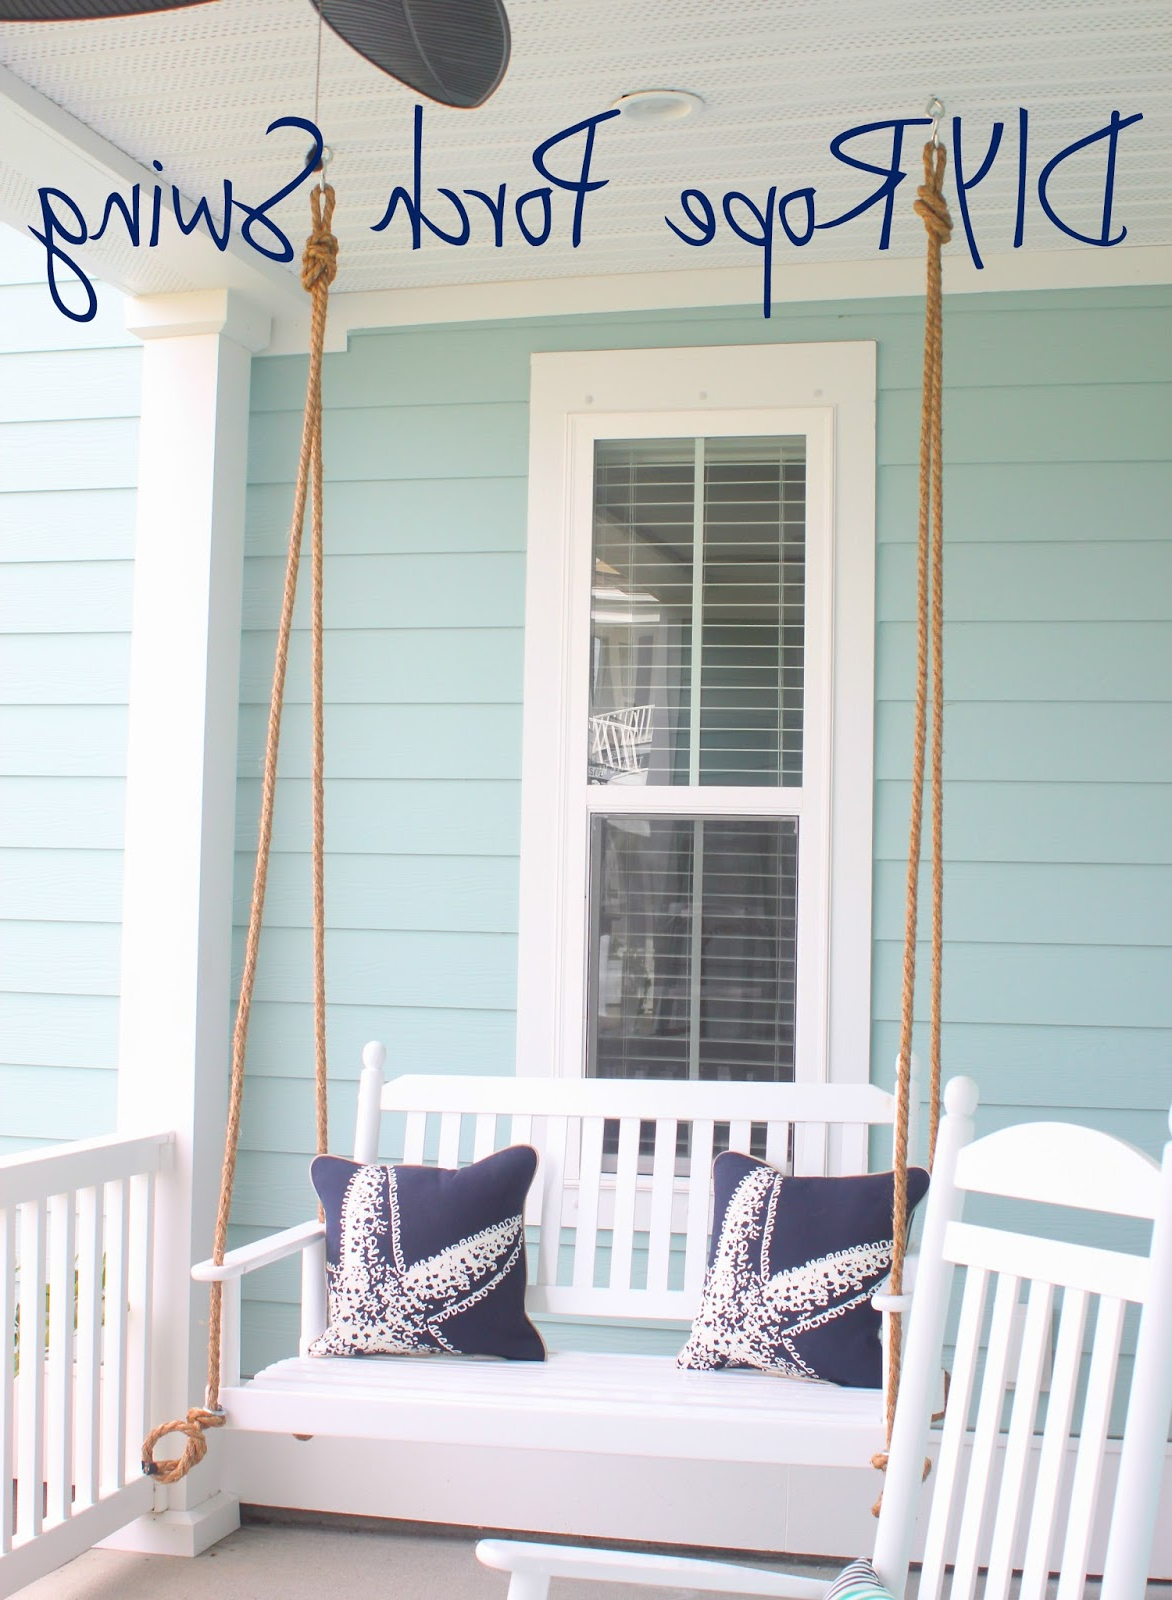 Hanging Daybed Rope Porch Swings Pertaining To Newest Borrowed Heaven: Diy Rope Porch Swing (View 15 of 30)